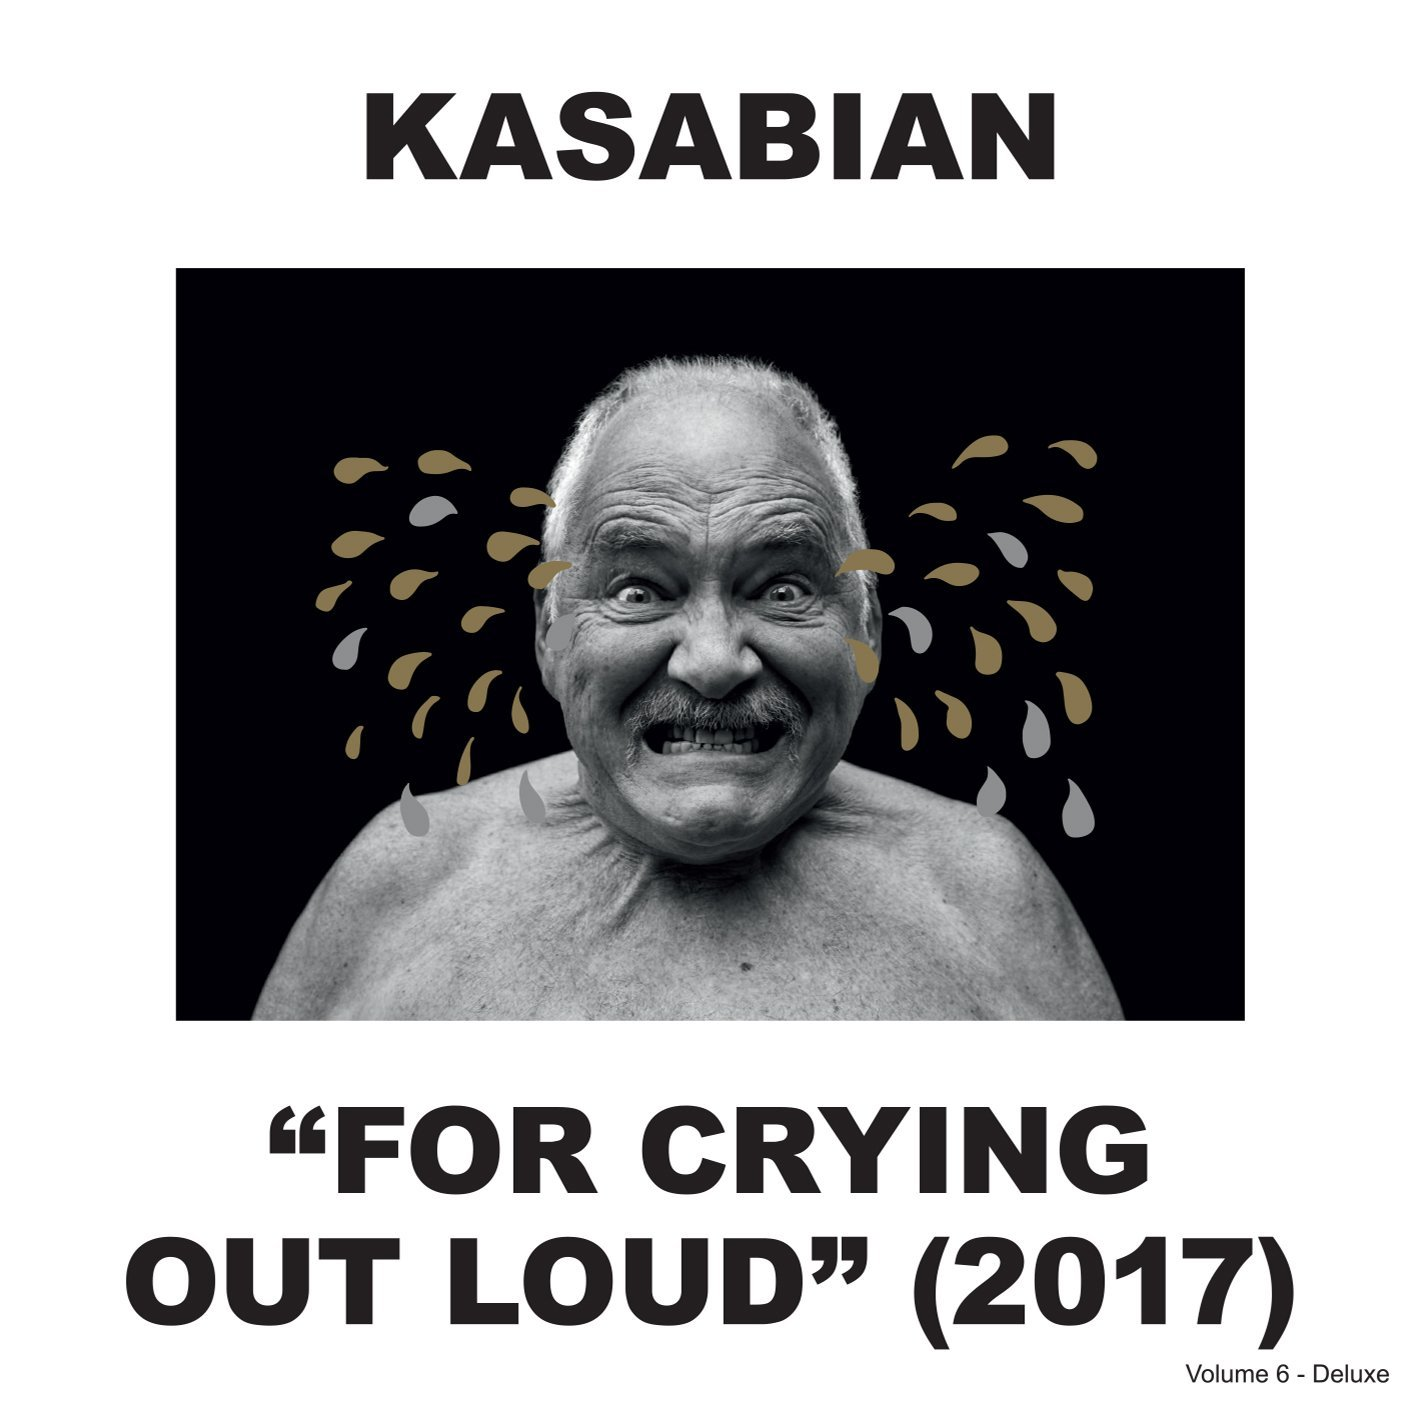 Kasabian For Crying Out Loud cover artwork